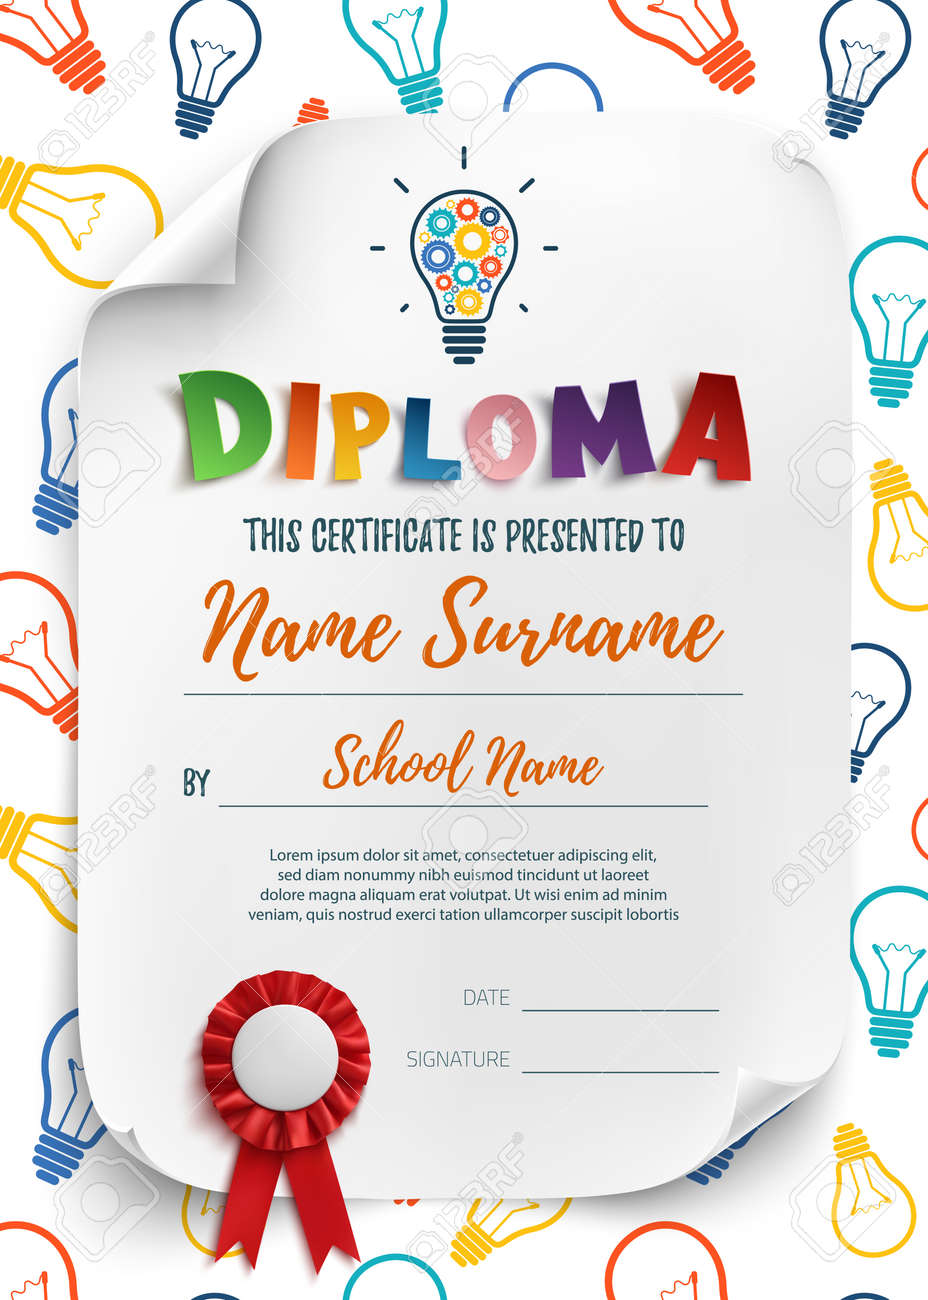 Preschool certificate template image collections certificate diploma template for kids school preschool playschool diploma template for kids school preschool playschool certificate background yadclub Image collections